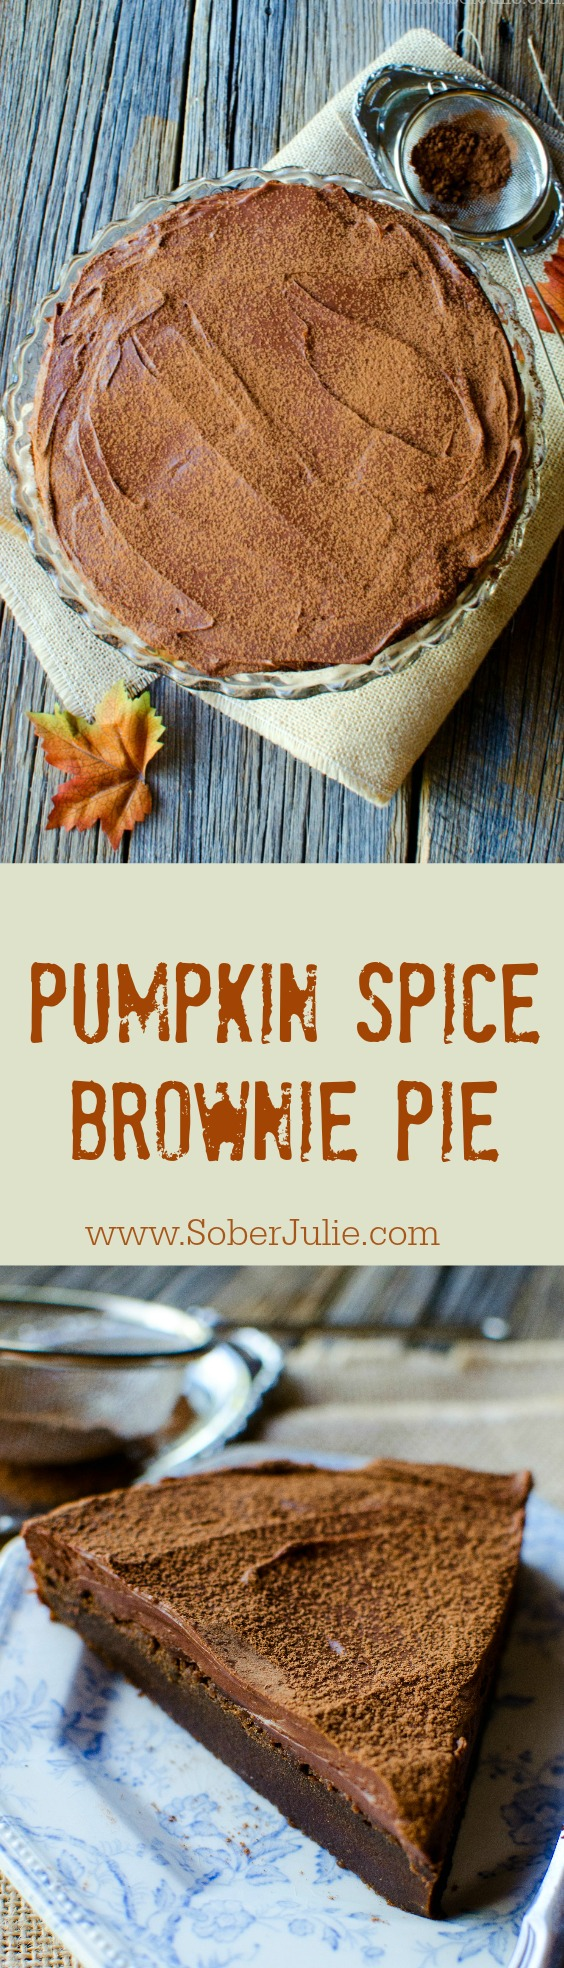 pumpkin-spice-brownie-pie-pumpkin-recipe-dessert